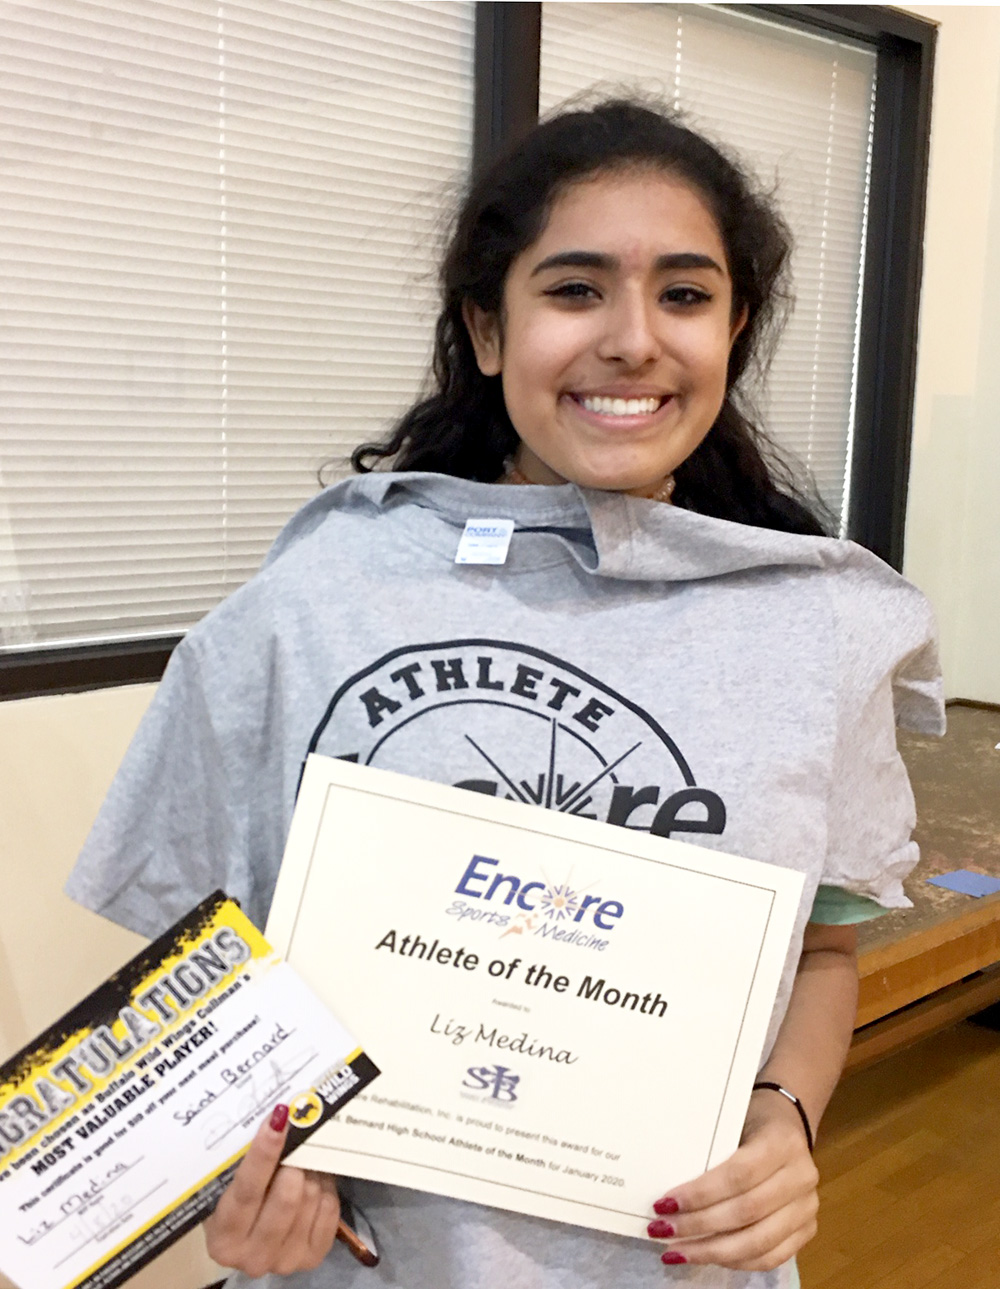 Liz Medina is Athlete of the Month for Saint Bernard Preparatory School and #EncoreRehab Cullman